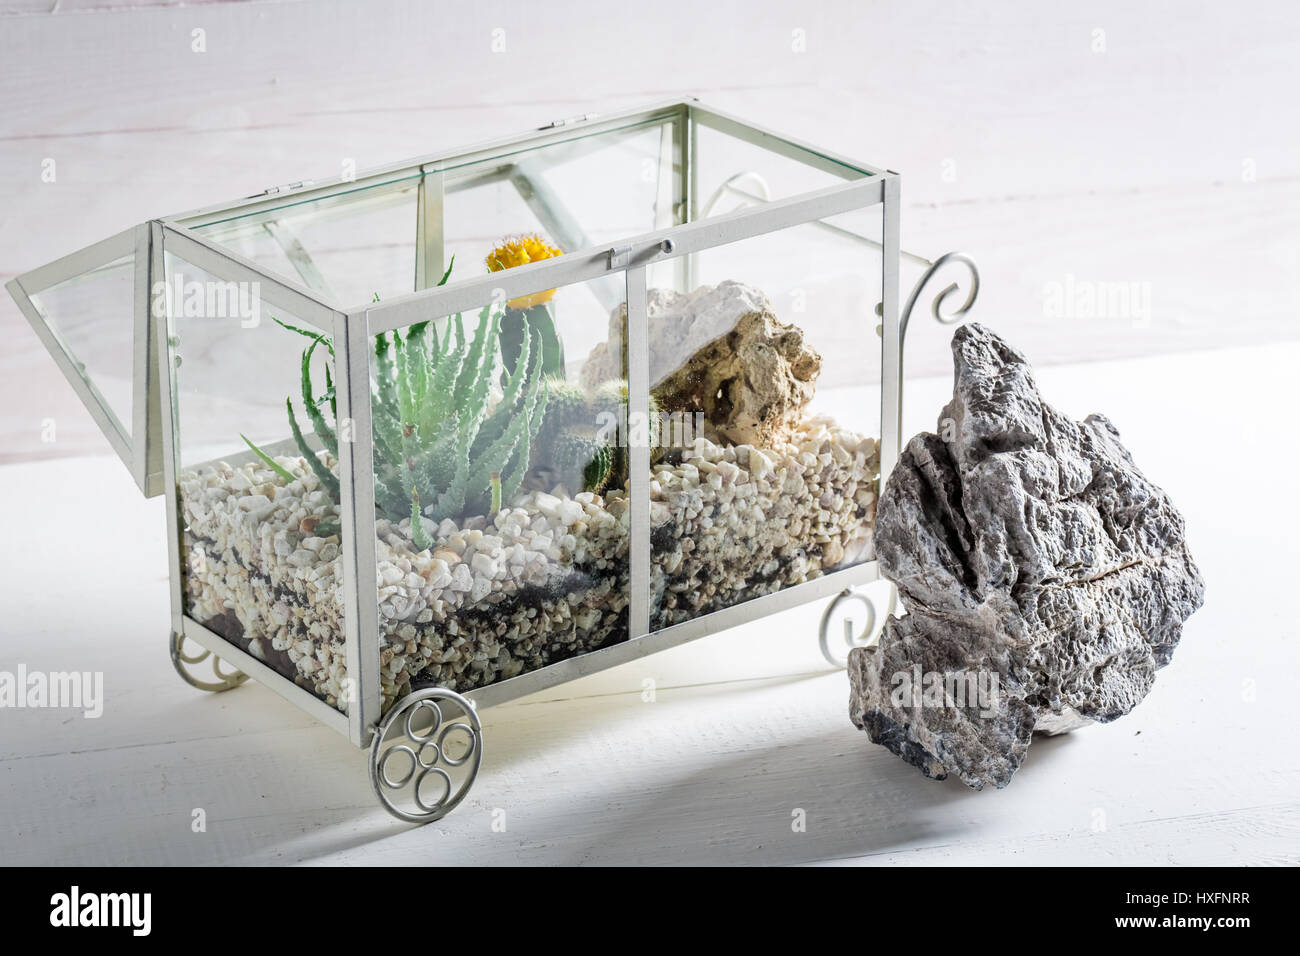 Small Terrarium With Live Cactus And Self Ecosystem Stock Photo